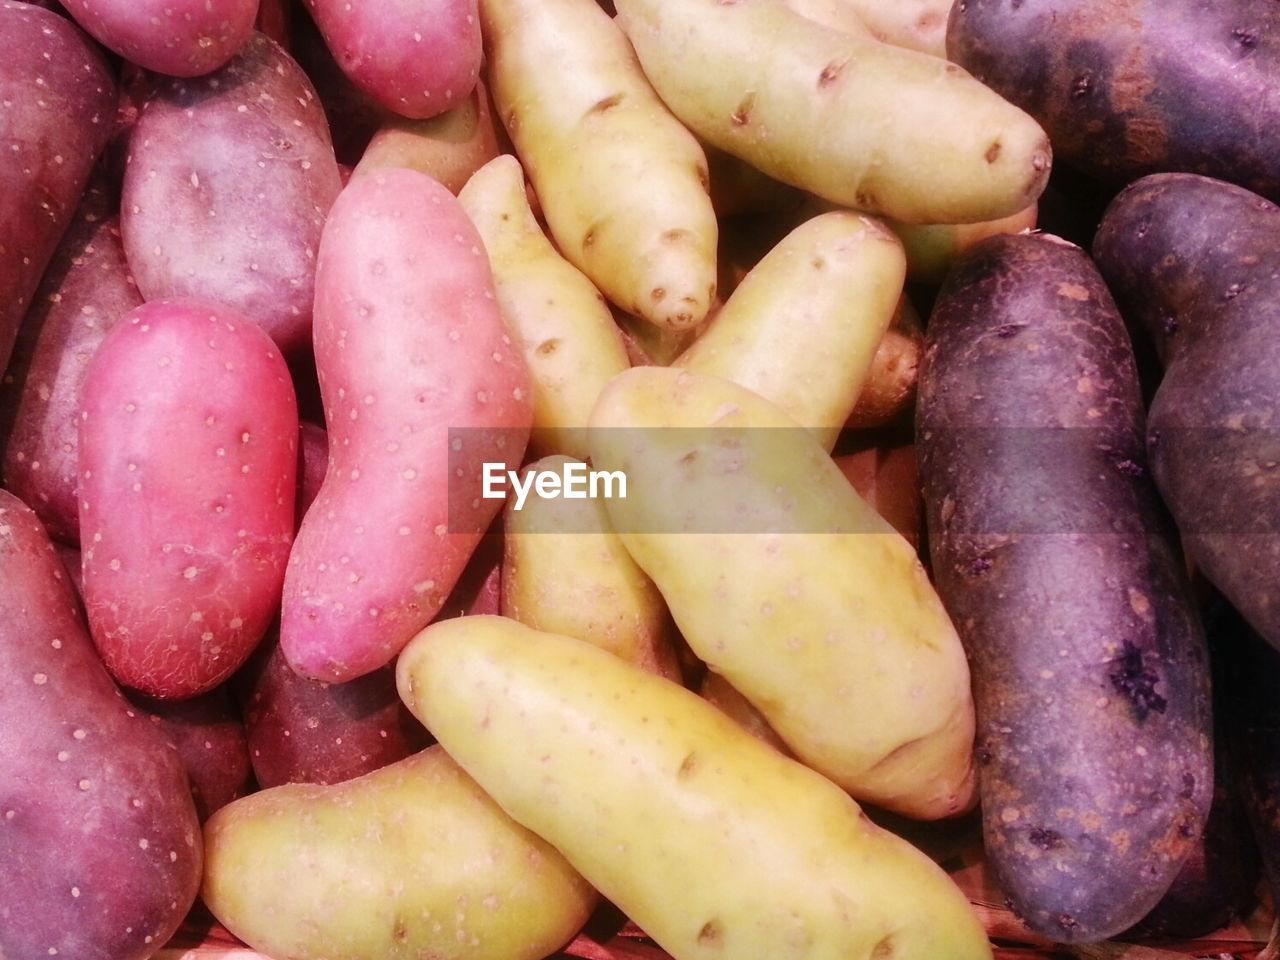 food and drink, food, backgrounds, healthy eating, freshness, full frame, wellbeing, large group of objects, vegetable, still life, abundance, retail, no people, for sale, root vegetable, potato, heap, close-up, market, high angle view, organic, retail display, purple